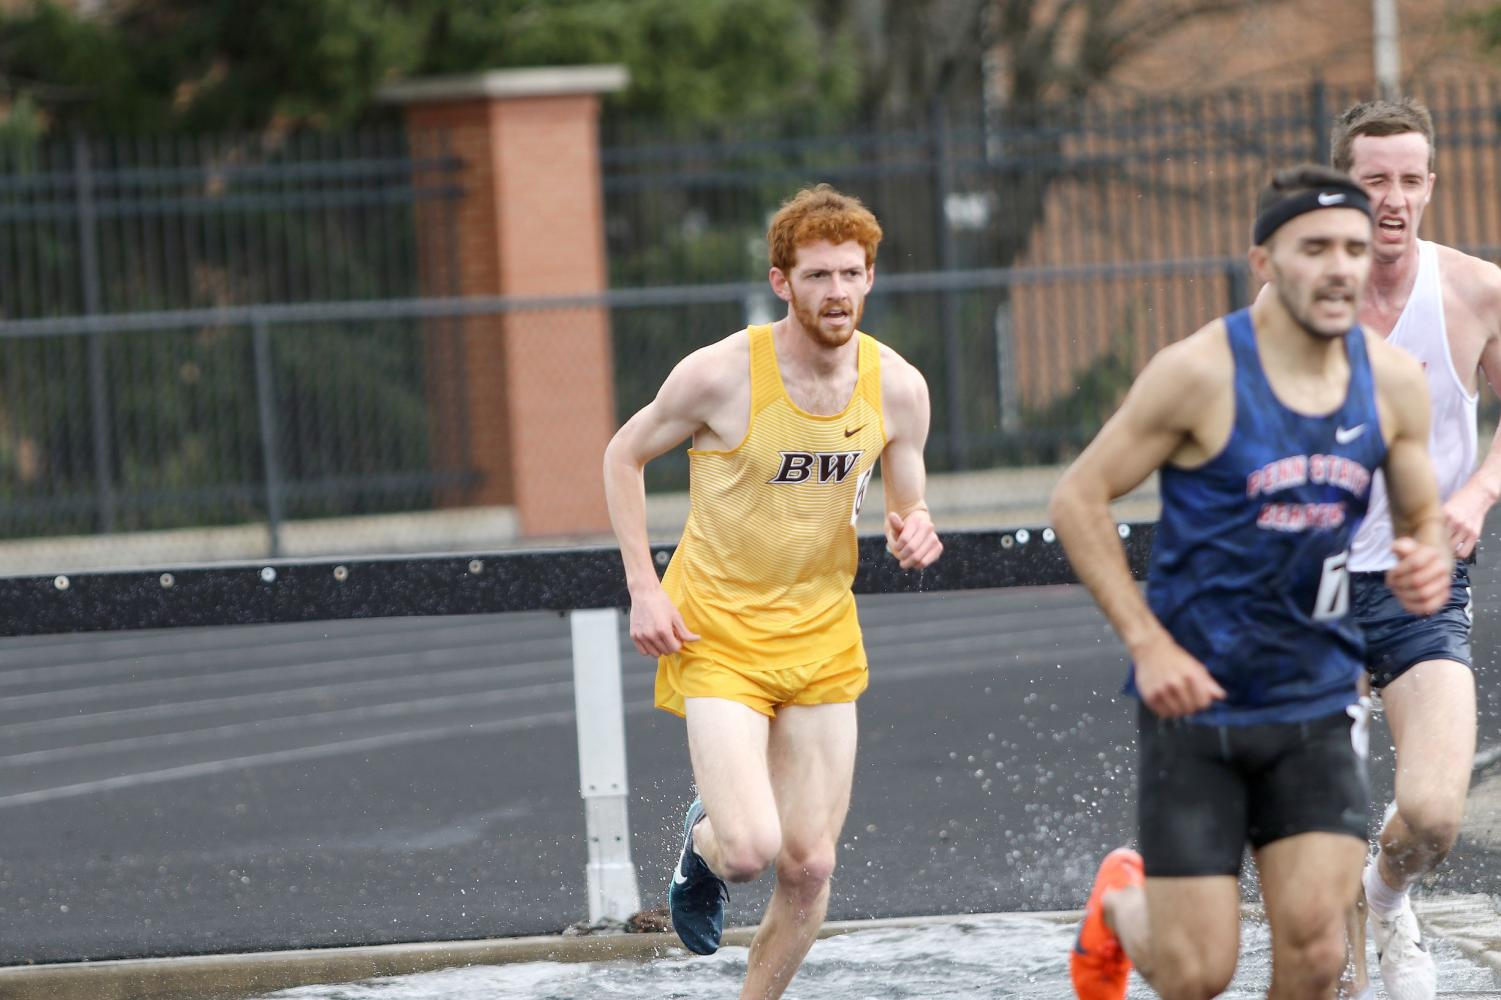 The Yellow Jackets Track and Field team will compete in the OAC Championships at Otterbein April 26-27.